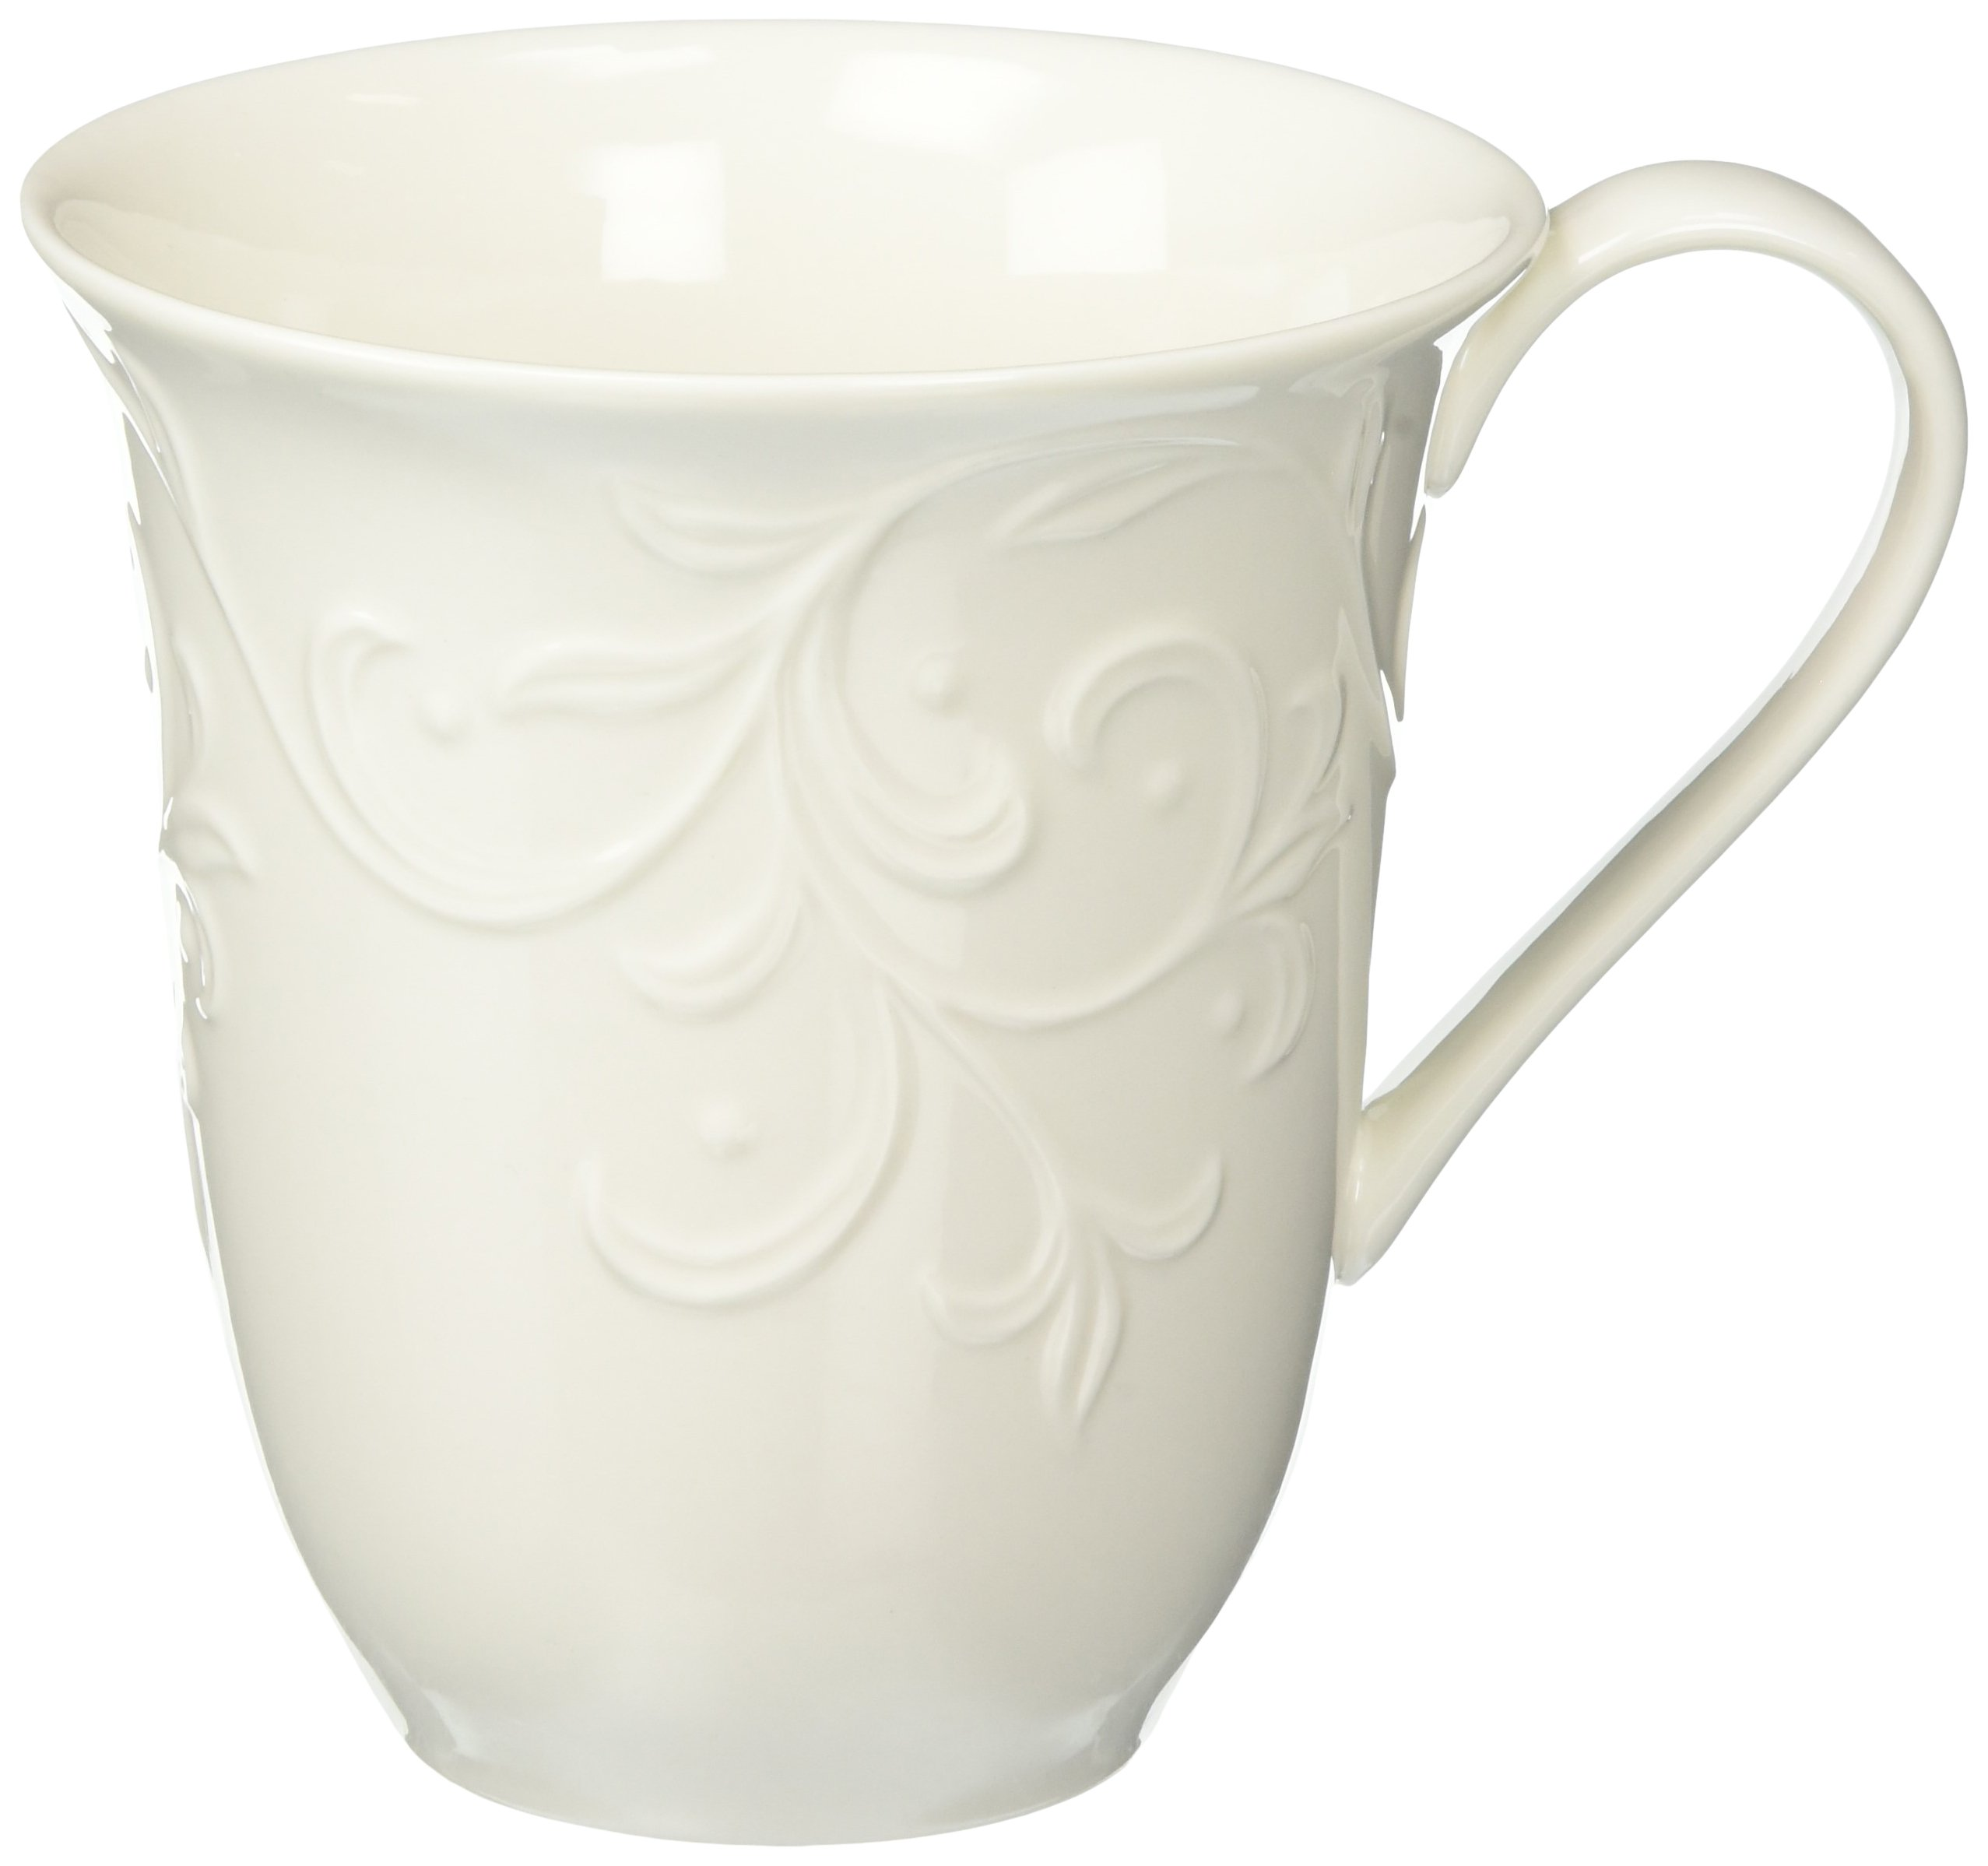 Lenox Opal Innocence Carved Mugs, White by Lenox